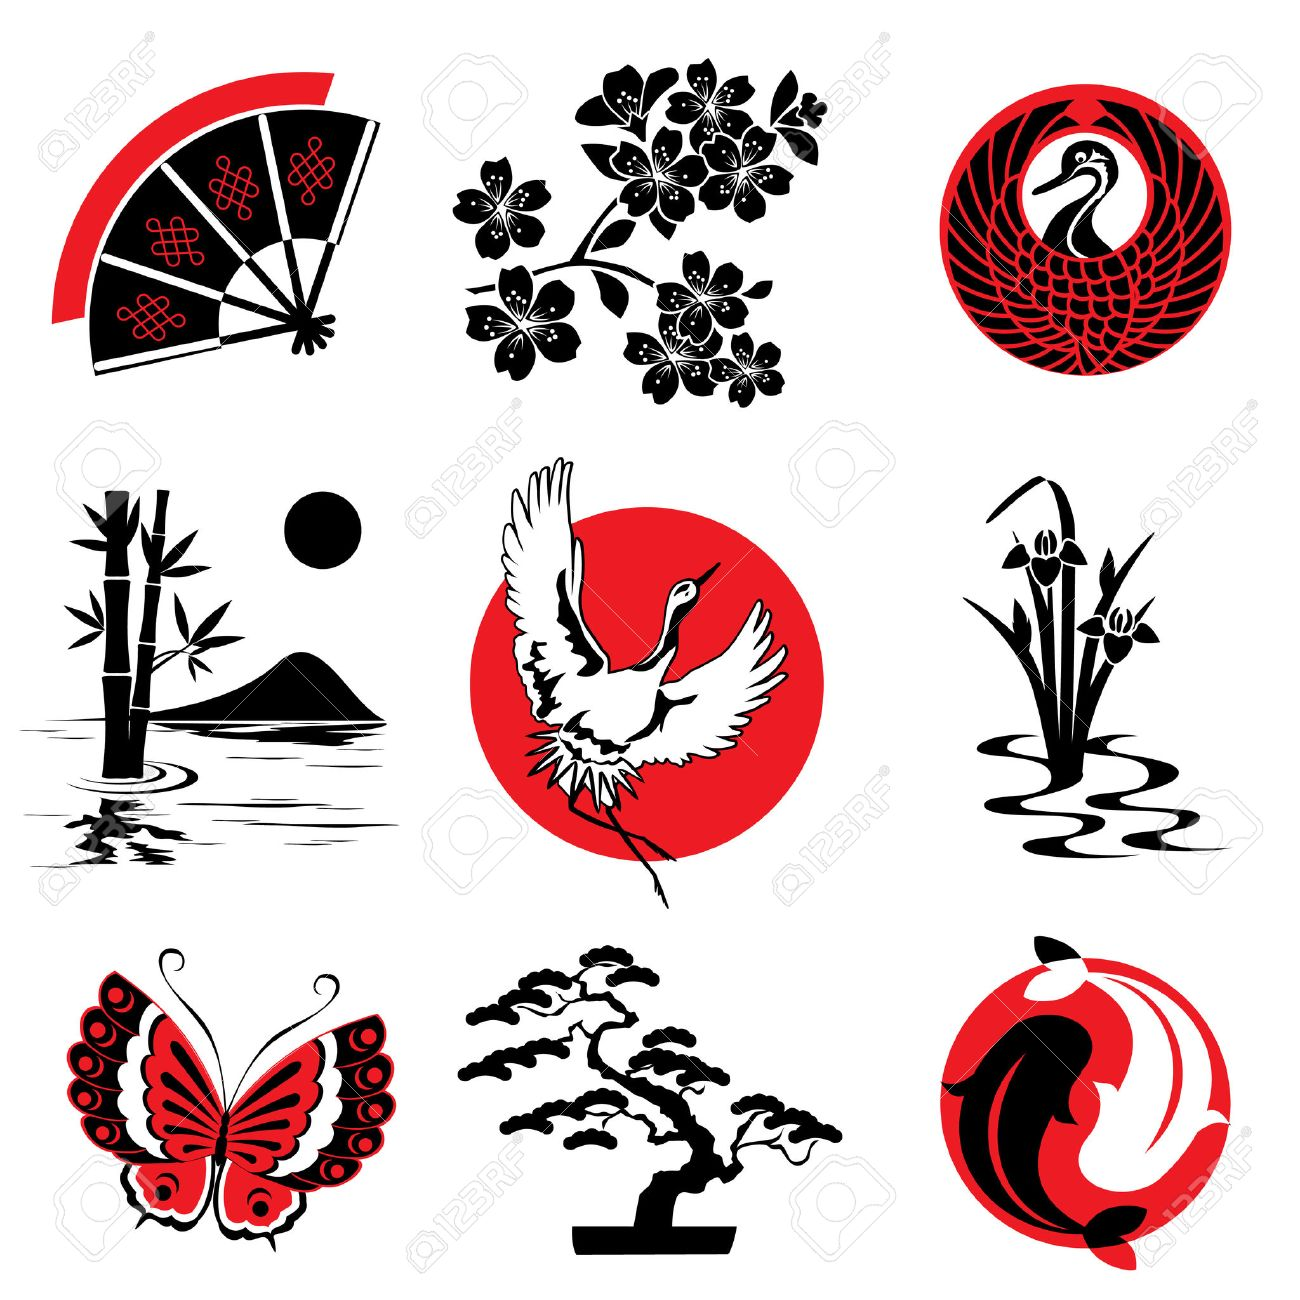 Vector Design Elements In The Japanese Style Royalty Free Cliparts